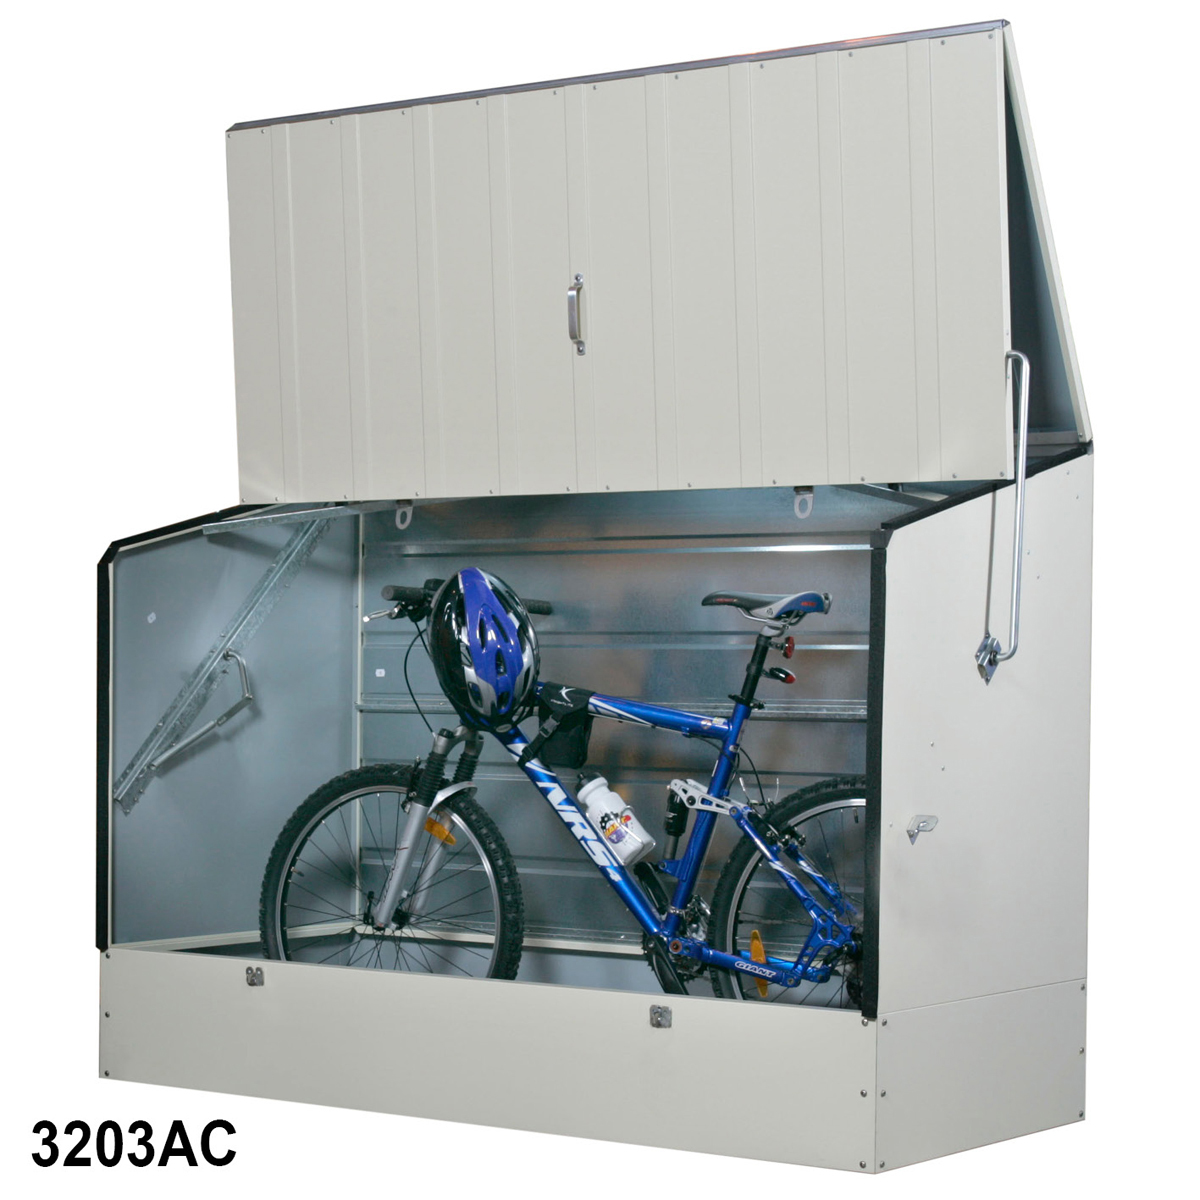 Cream Steel Bicycle Shed 1330h x 1960w x 890d mm